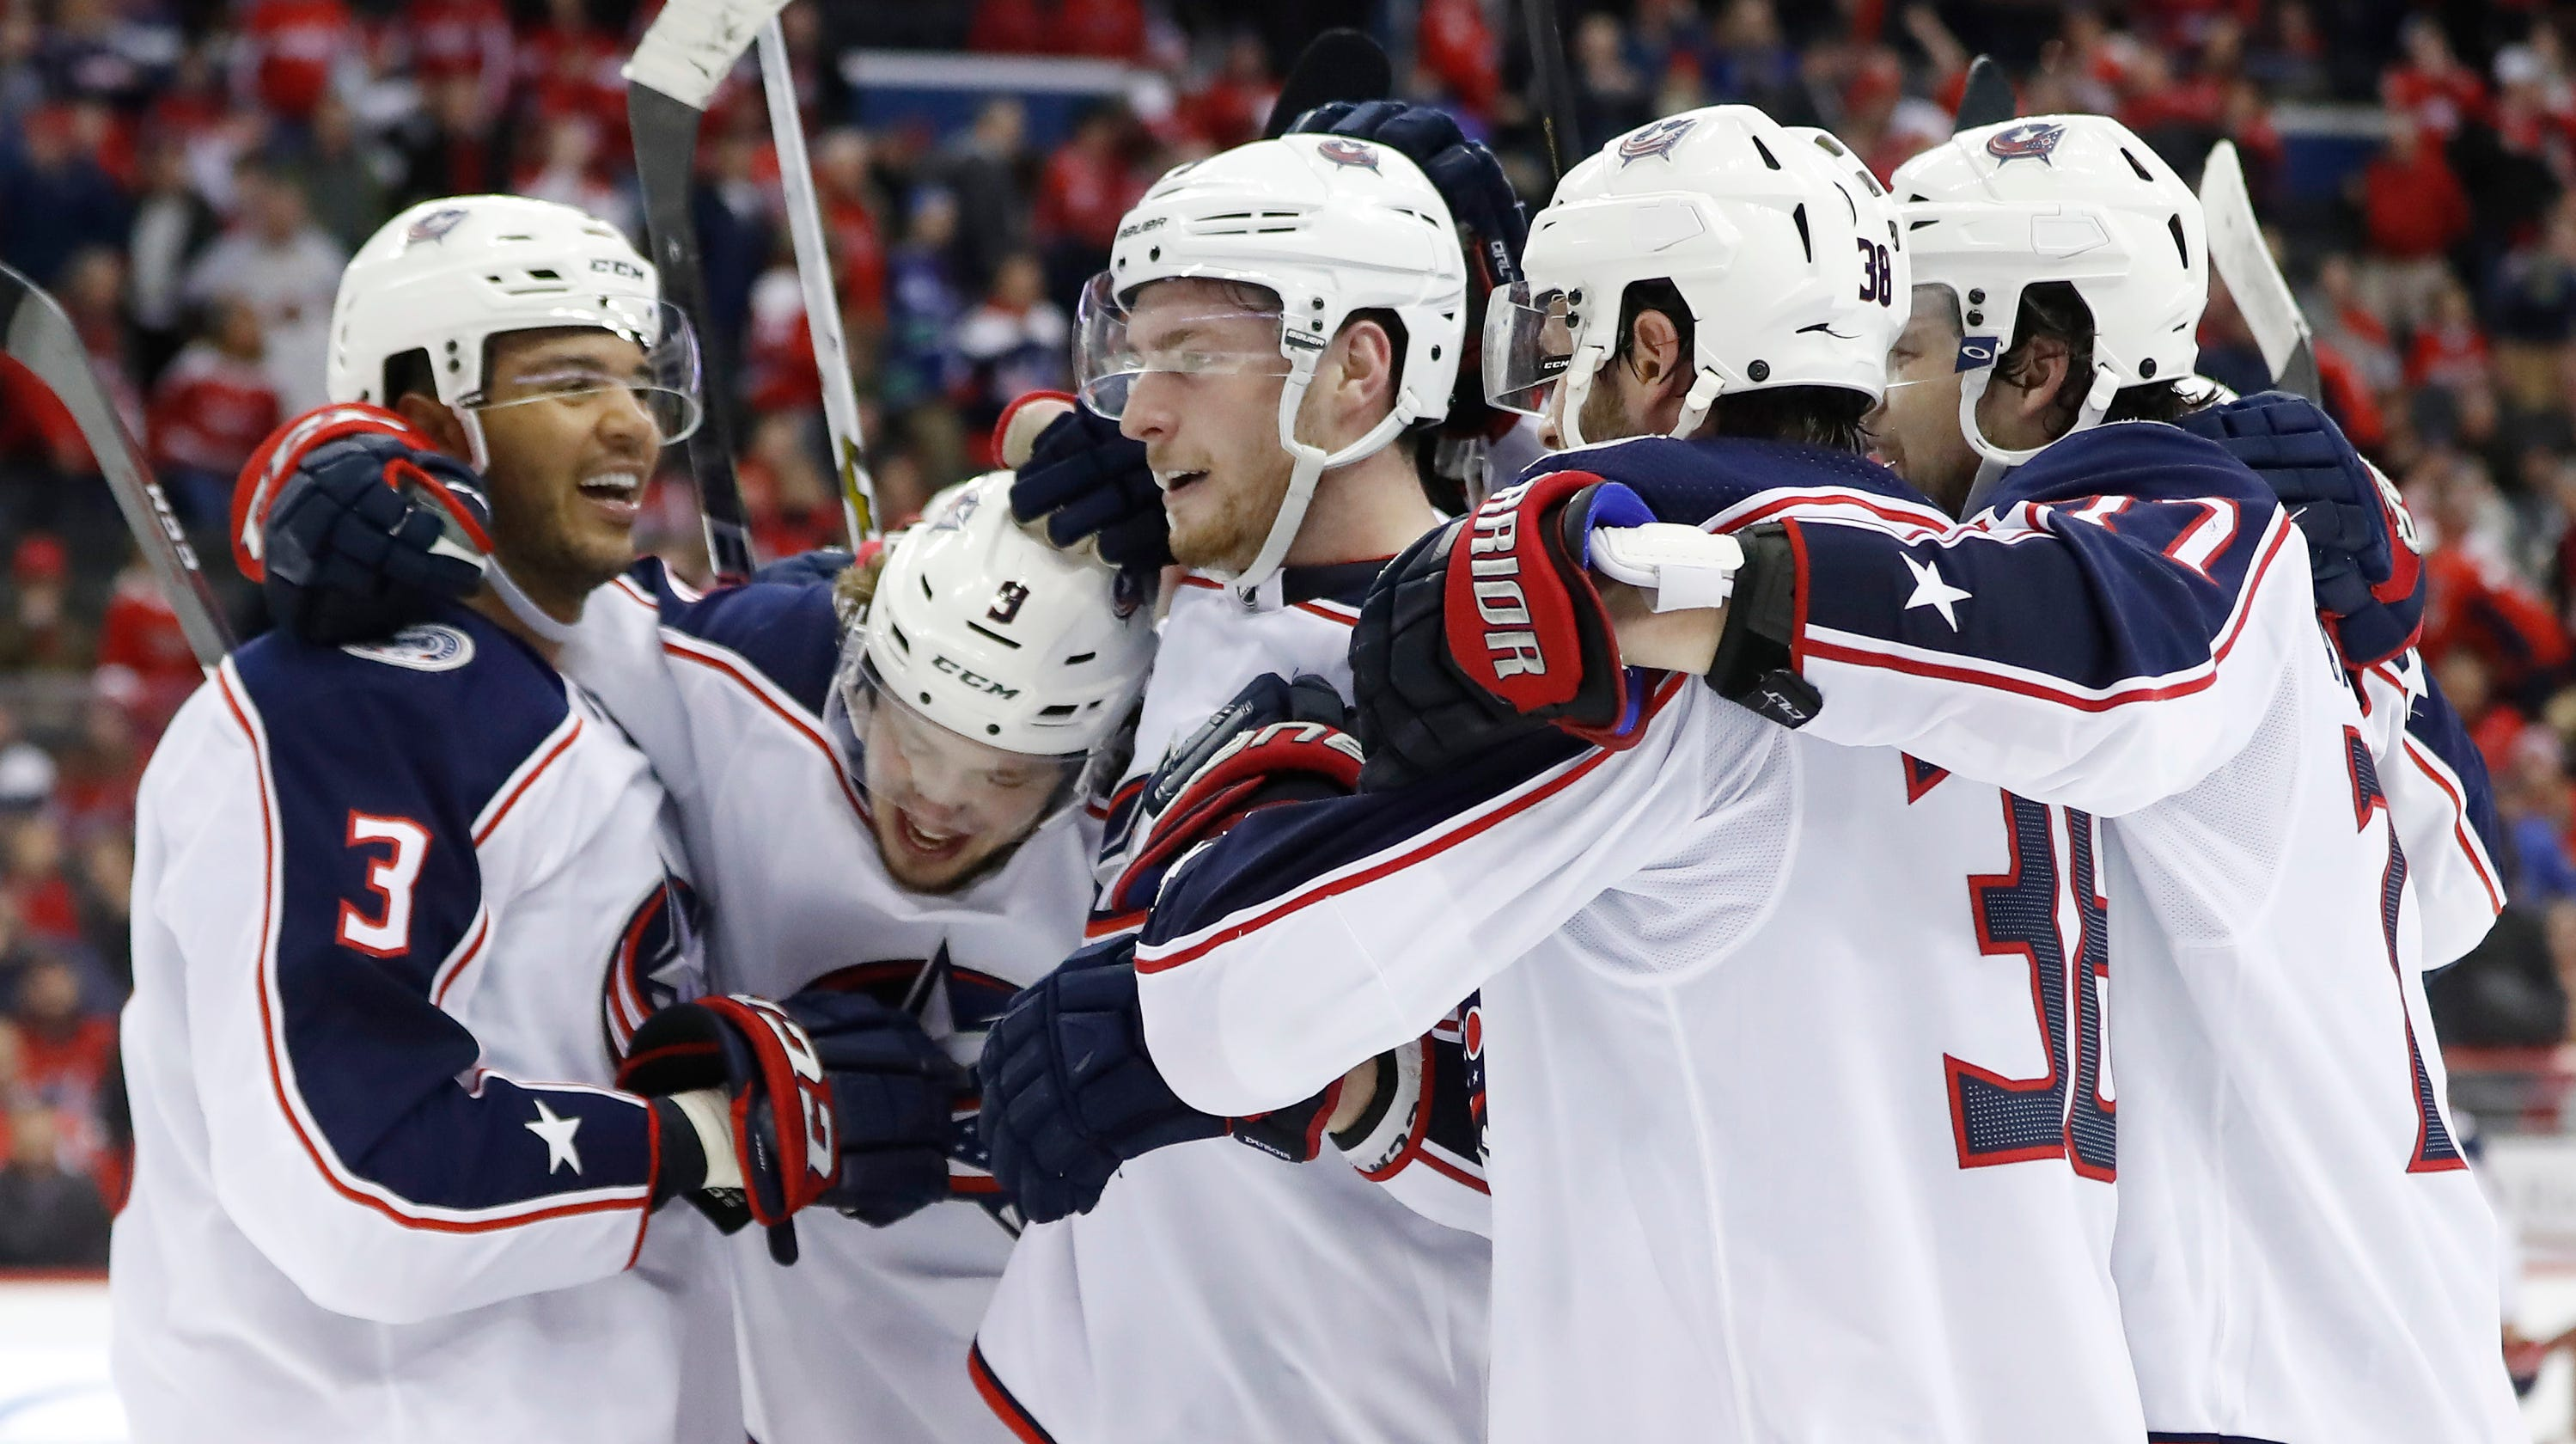 38011fe05d6 Blue Jackets copy Capitals star Evgeny Kuznetsov s celebration after  winning in overtime